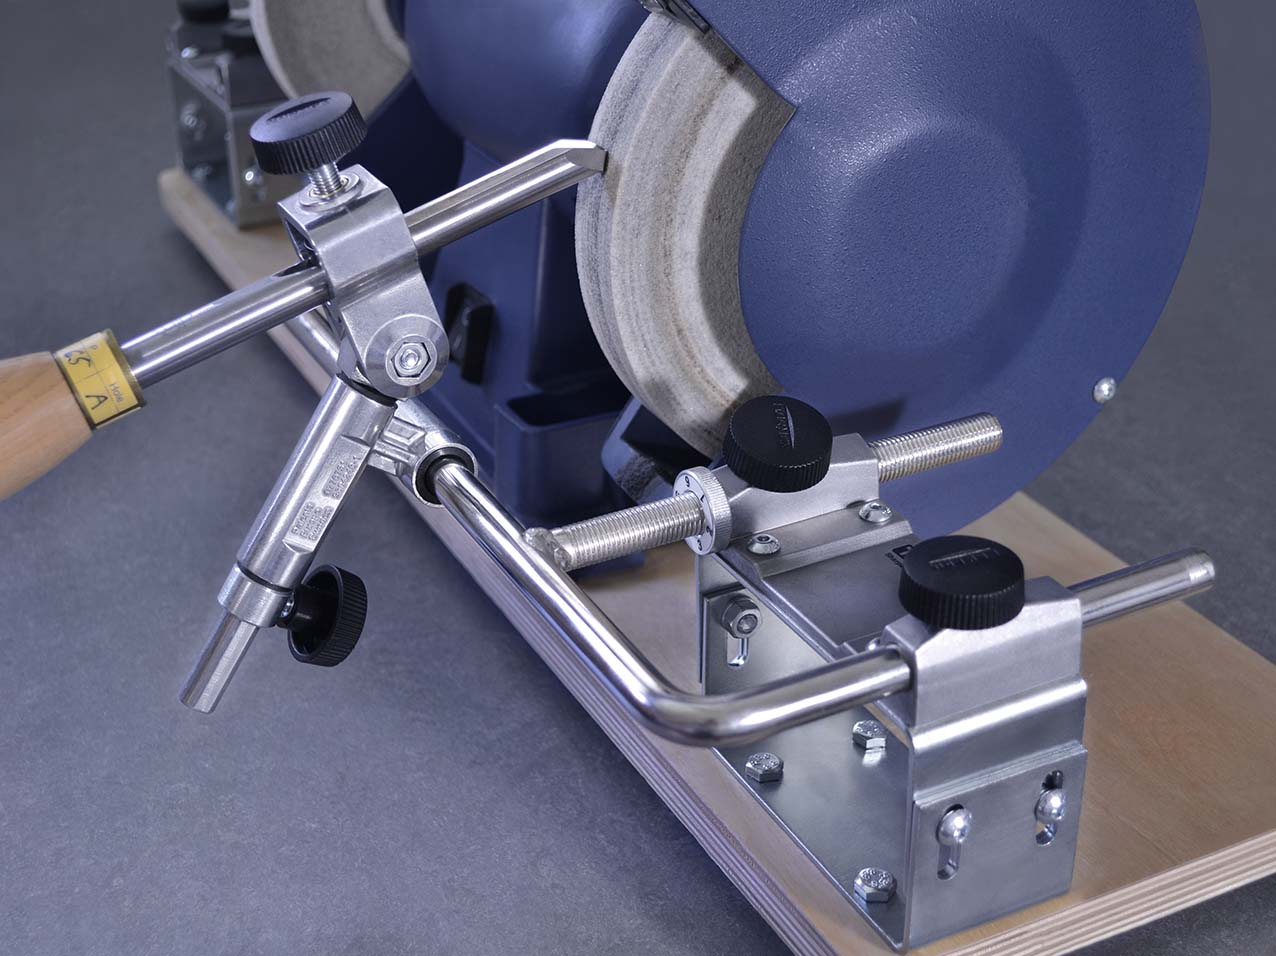 Enjoyable Bgm 100 Bench Grinding Mounting Set Tormek Lamtechconsult Wood Chair Design Ideas Lamtechconsultcom